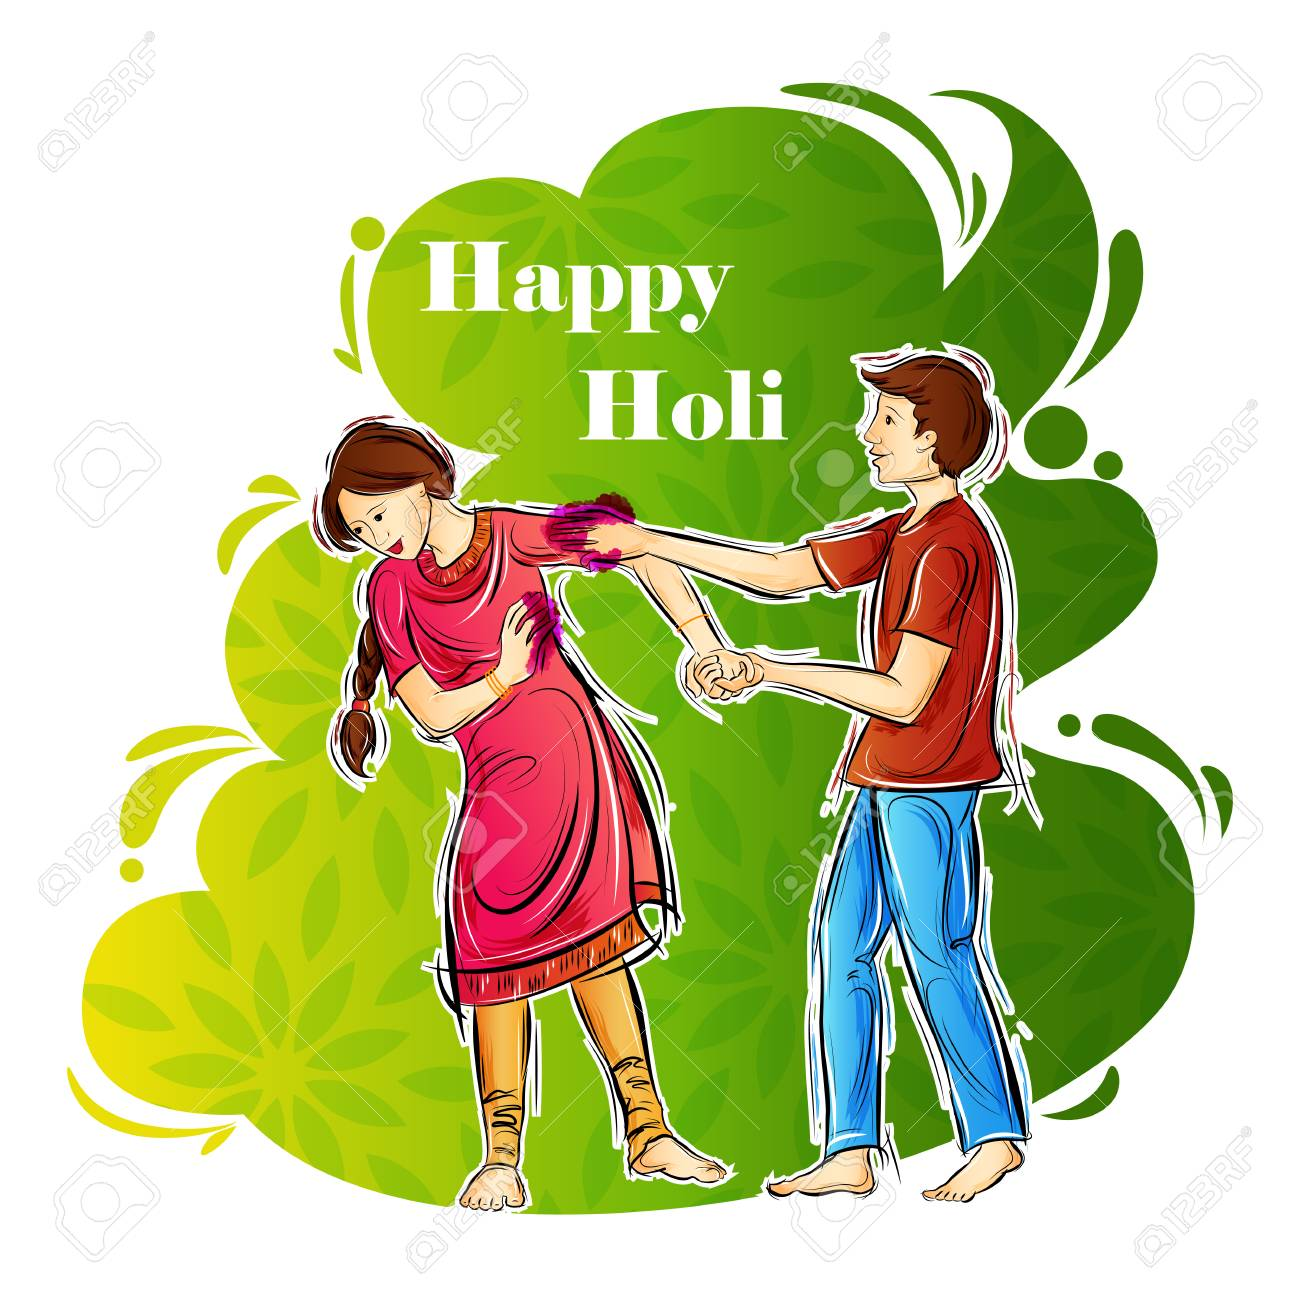 Indian People Playing India Festival Of Color Happy Holi